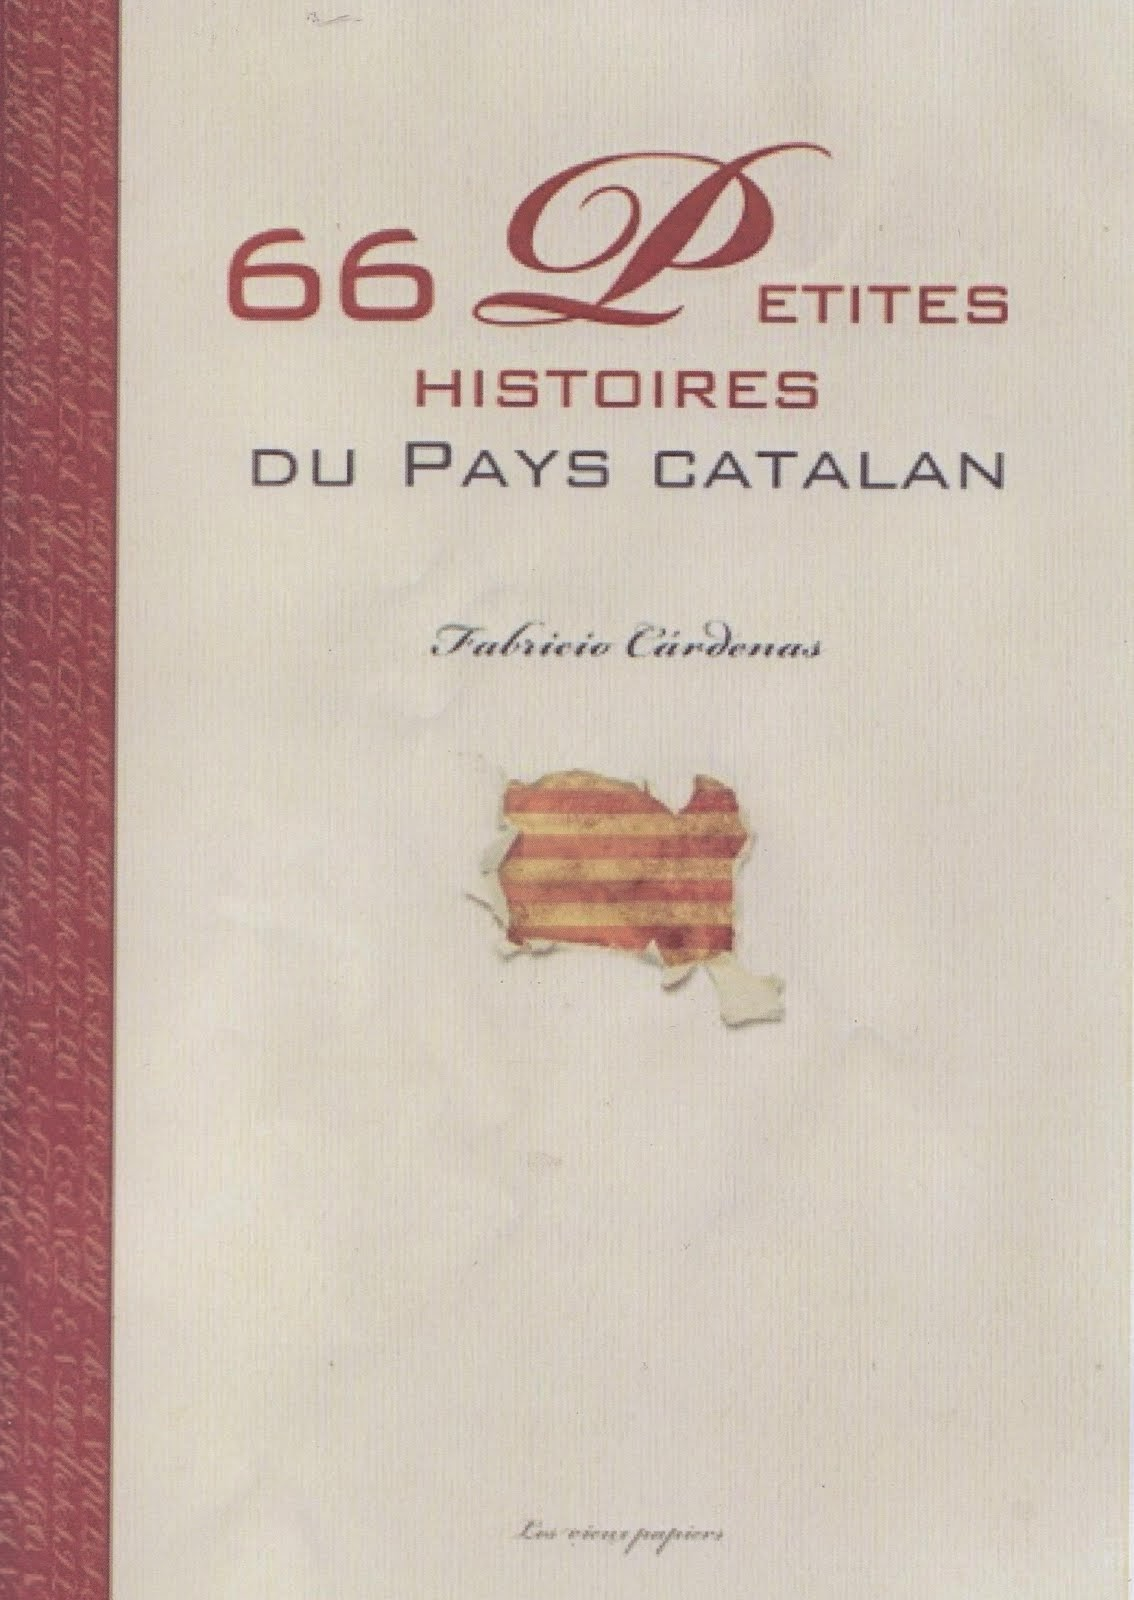 66 petites histoires du pays catalan